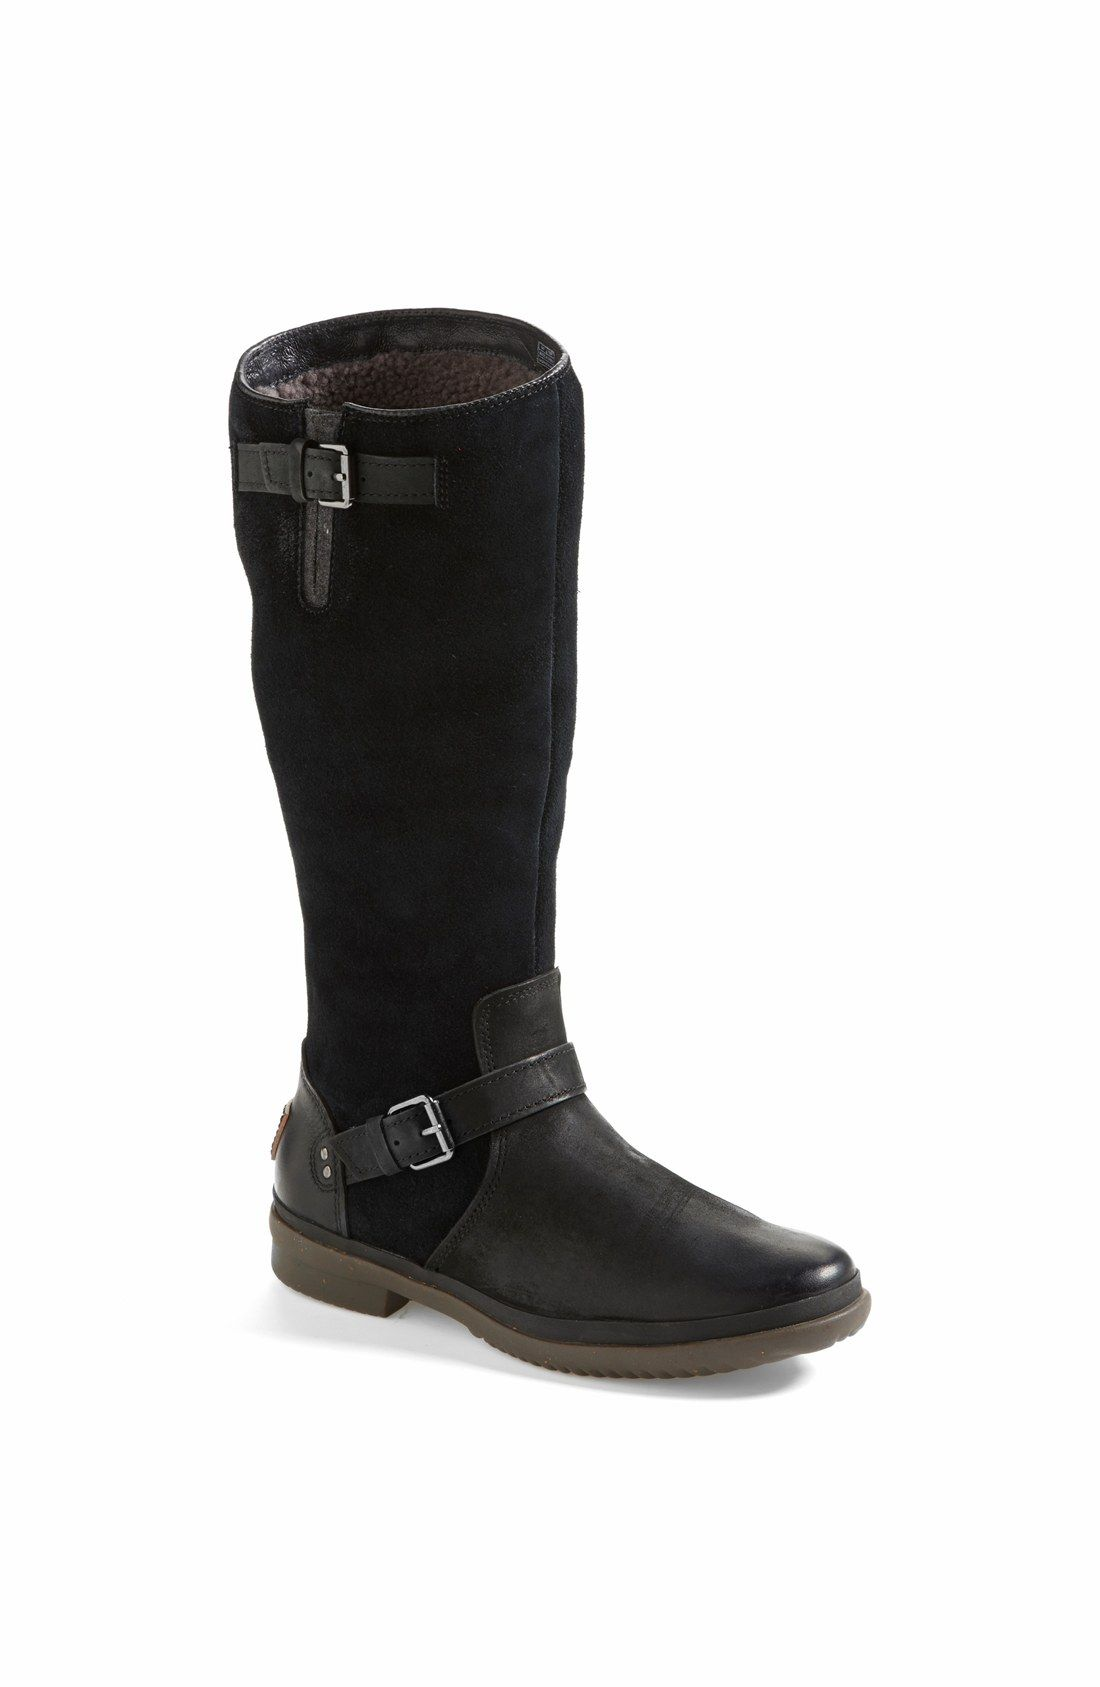 Keeping dry and warm in these new UGG® Australia 'Thomsen' waterproof  leather knee